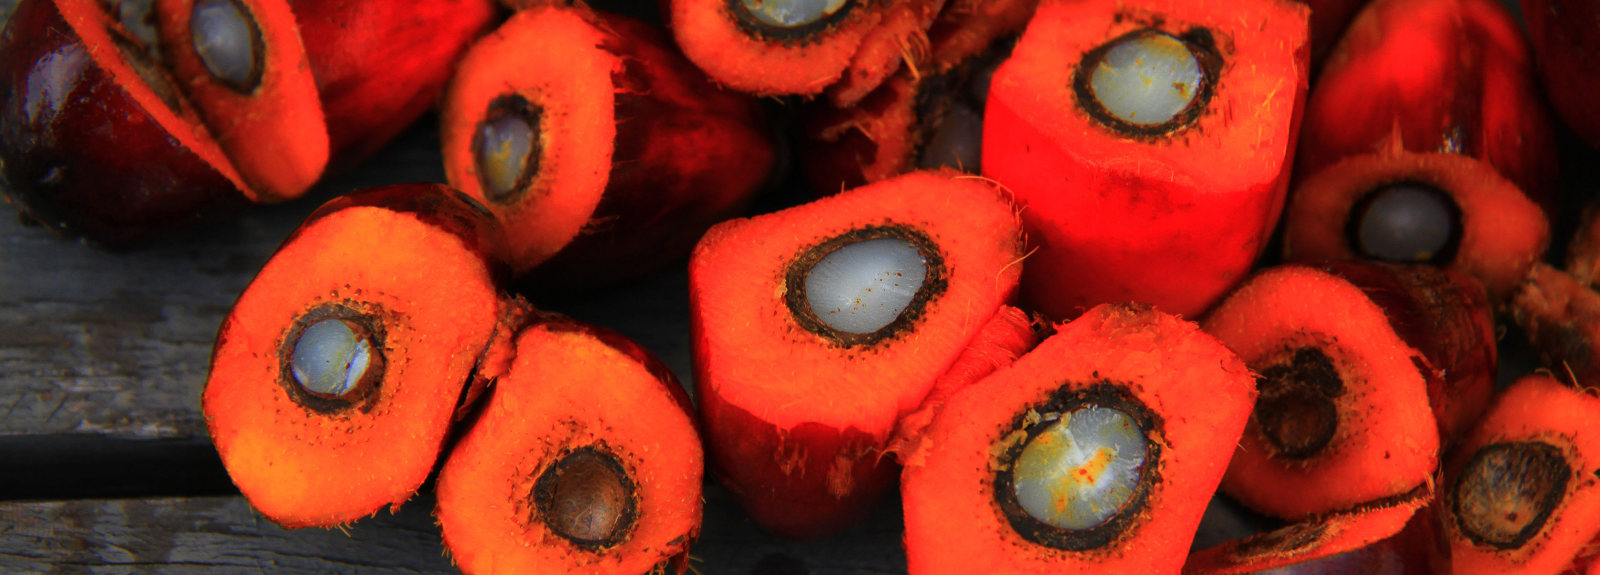 Opened oil palm fruits